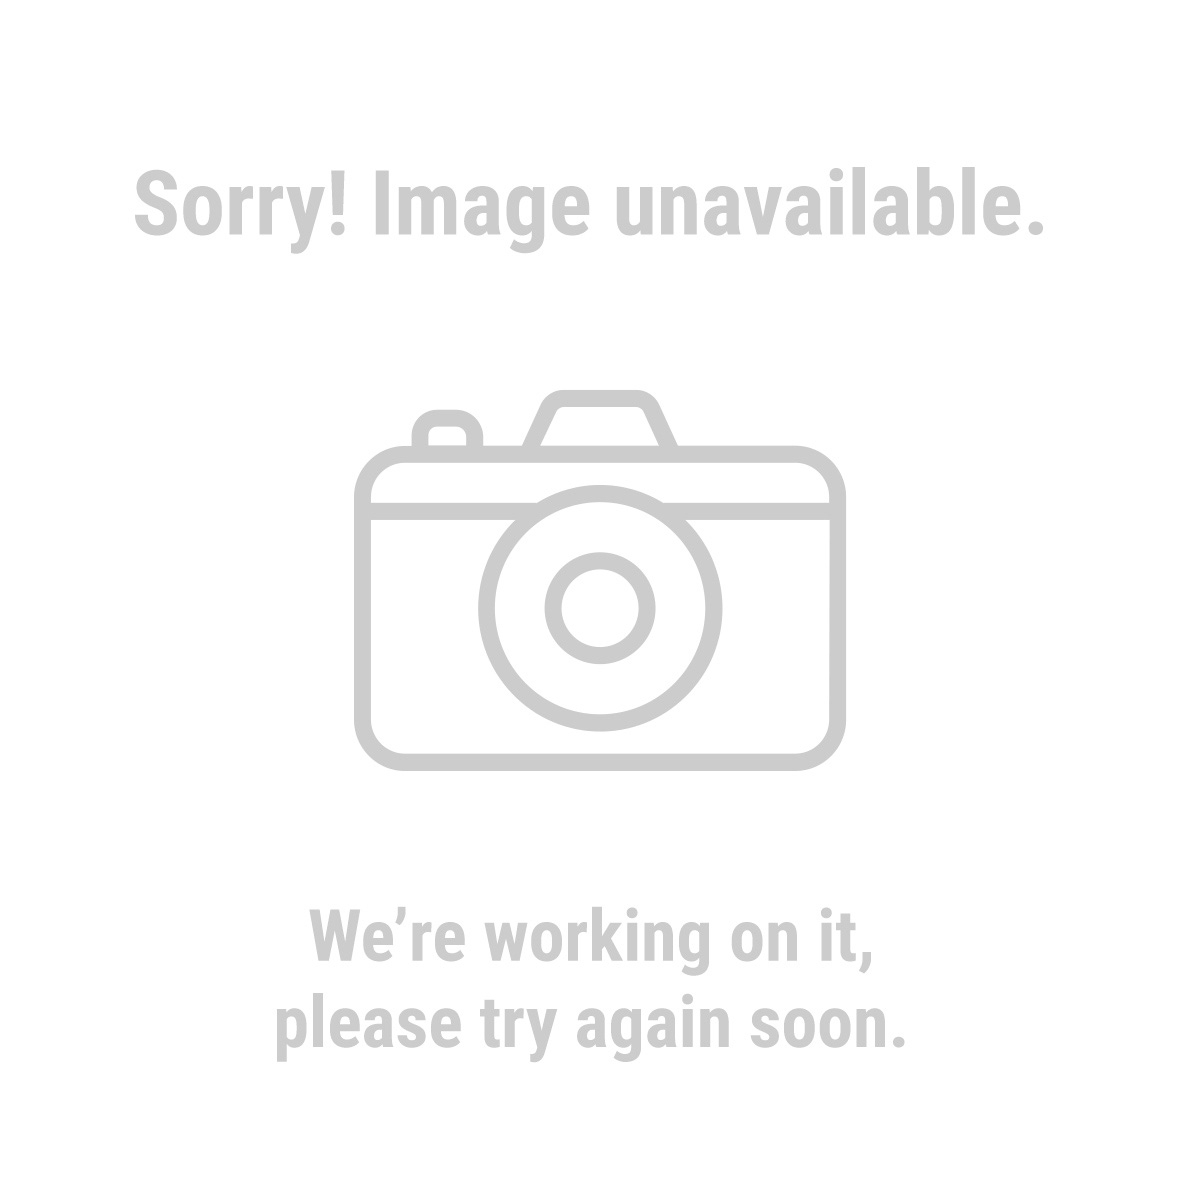 HFT 41445 100 Ft. x 12 Gauge Outdoor Extension Cord